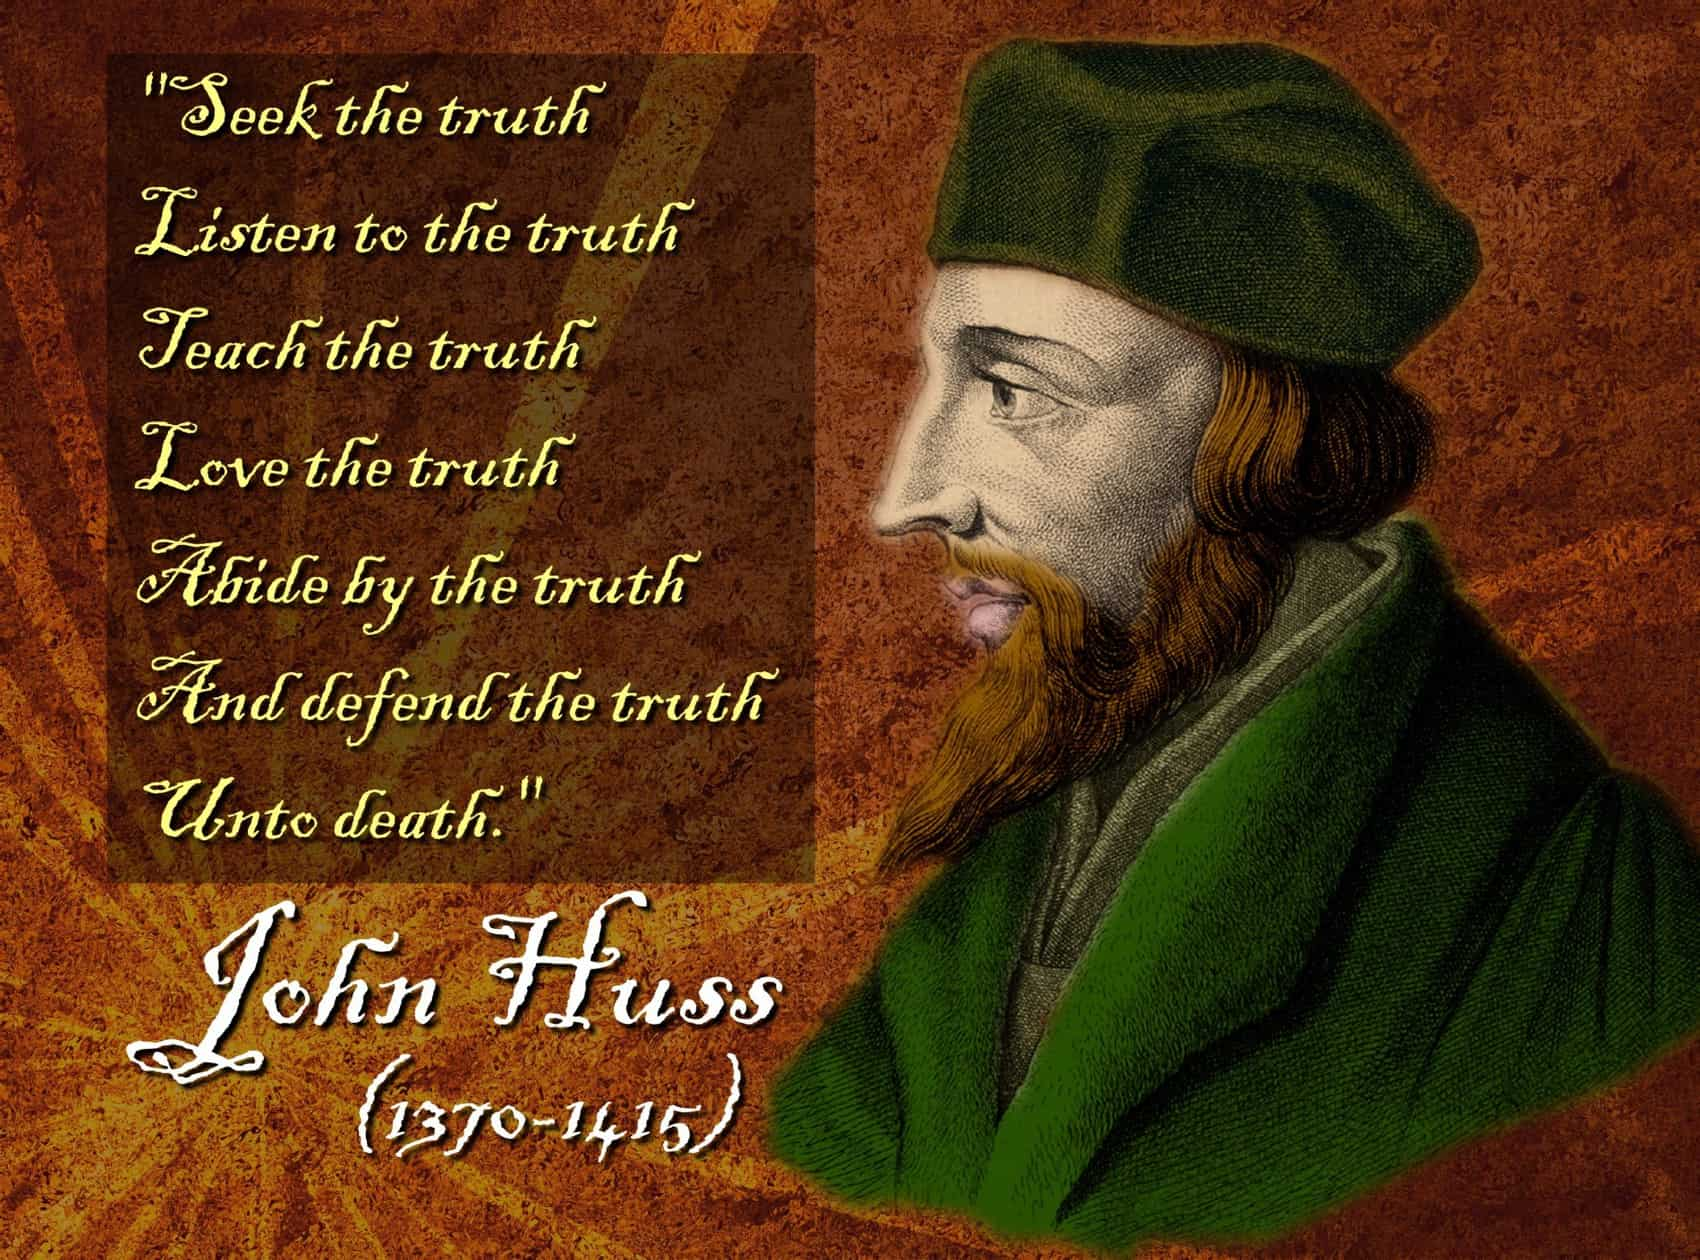 Bohemia Quotes Wallpaper Jan Hus John Wycliffe And The Word Of God For All People